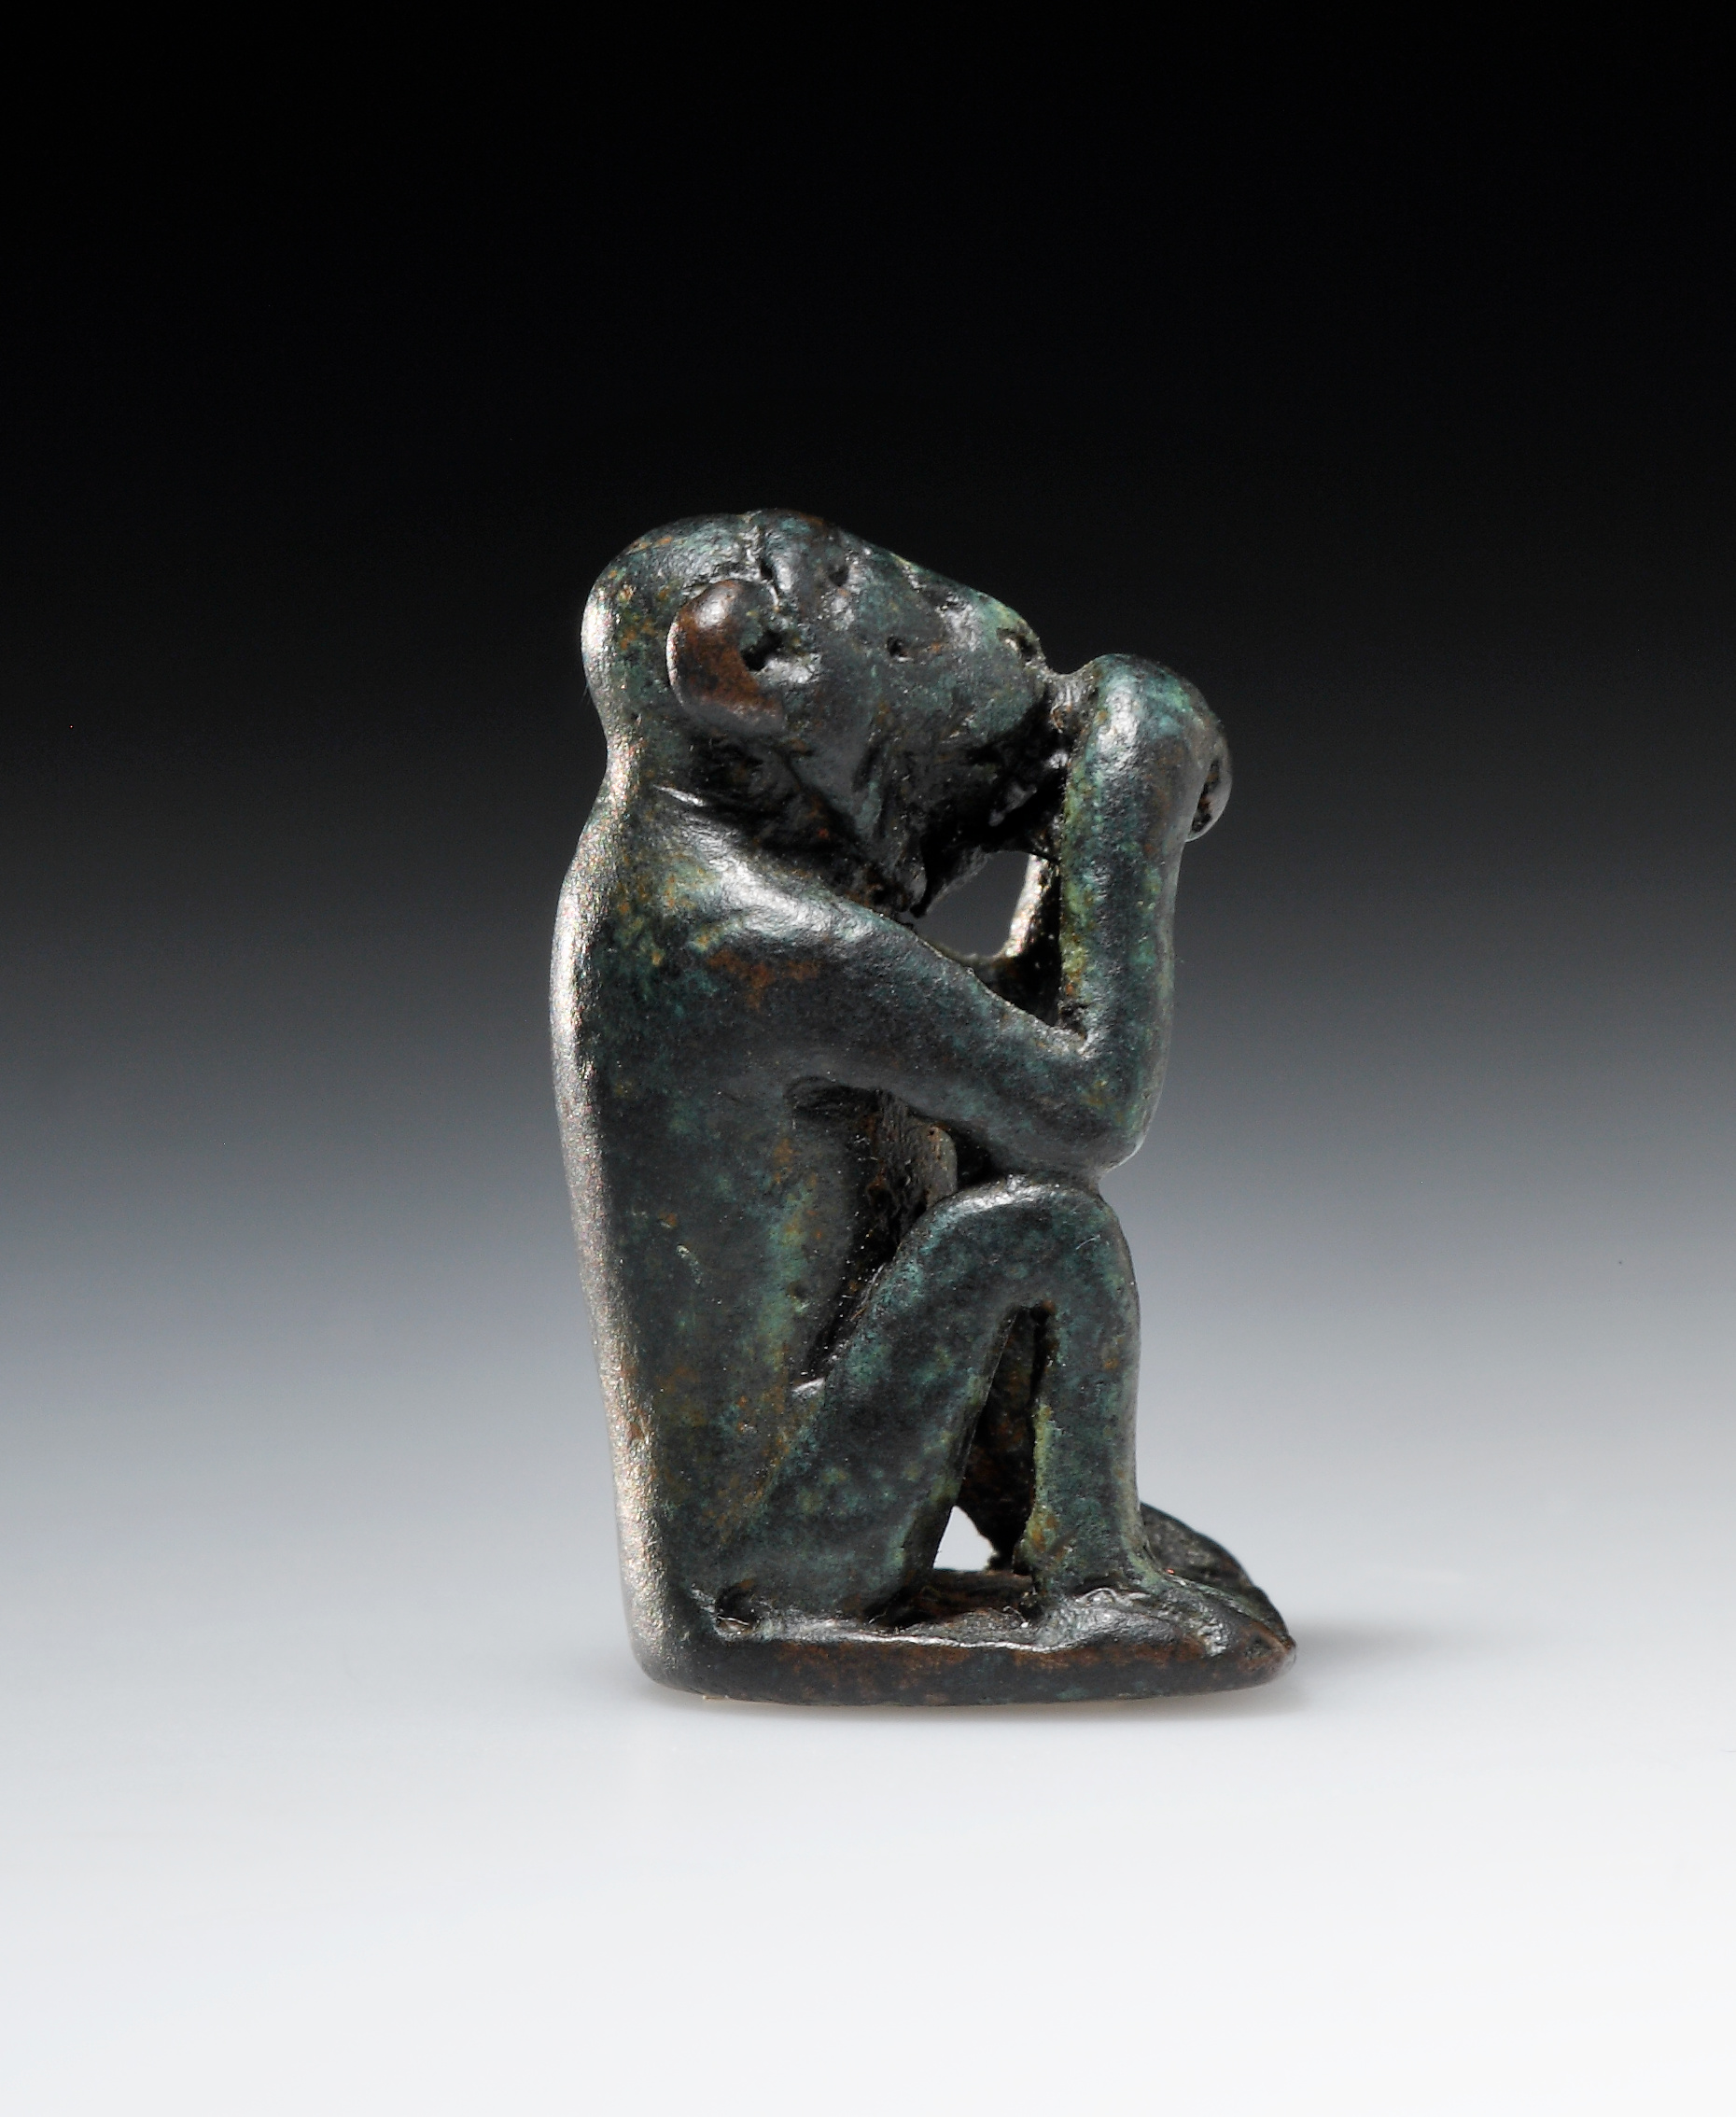 Lot 13 - A Bronze Weight in the Shape of an Ape